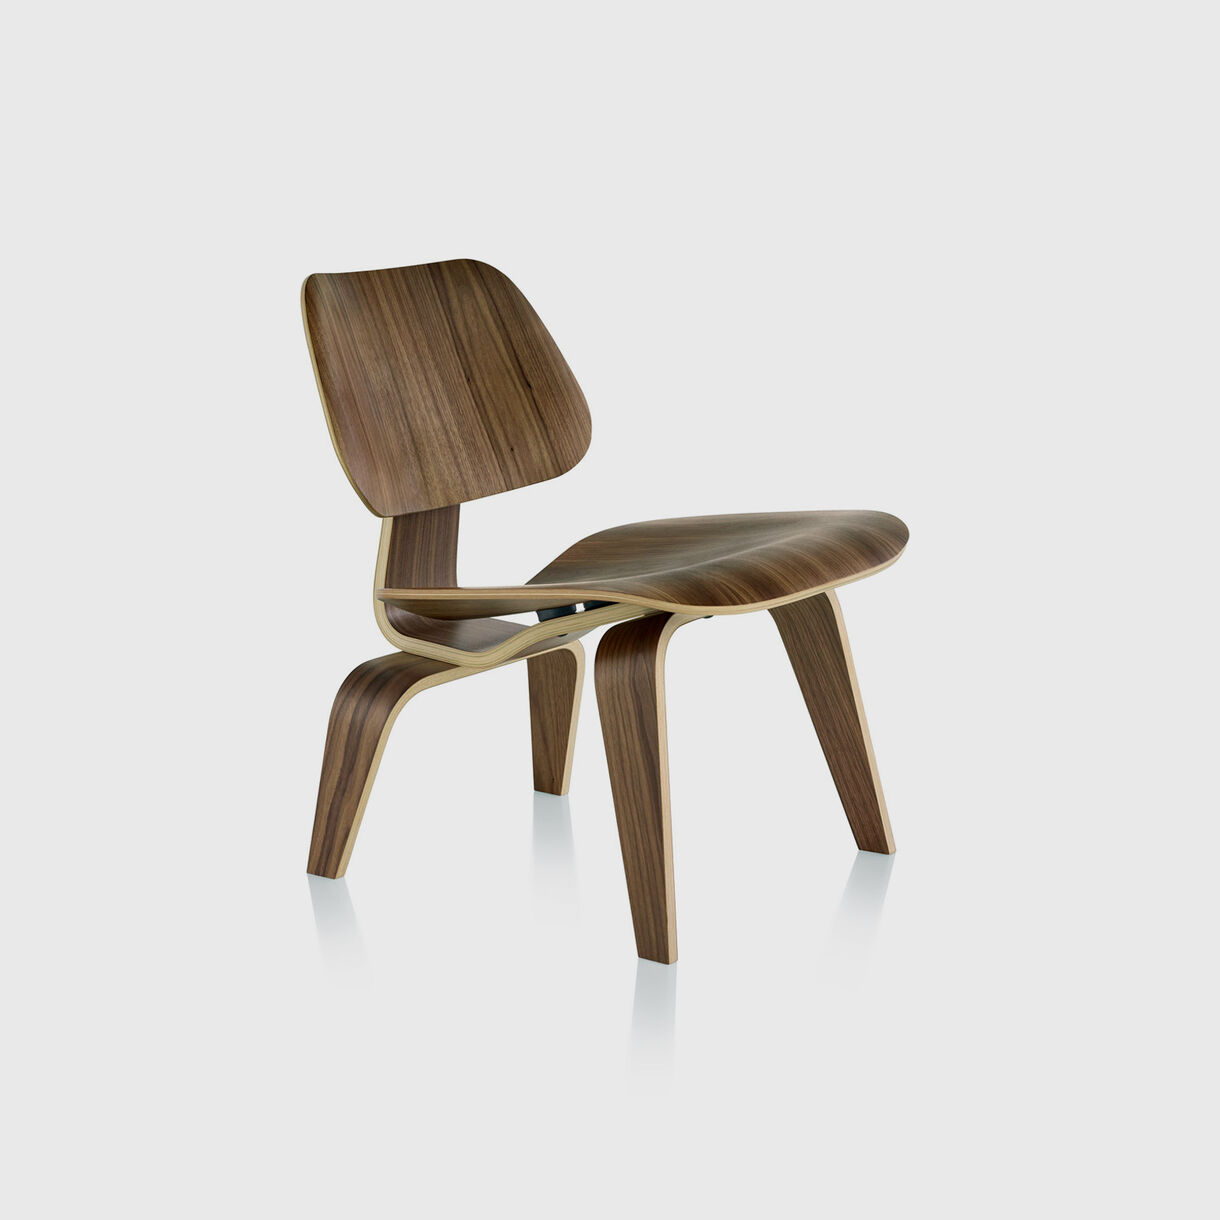 Eames Moulded Plywood Lounge Chair, Wood Base, Walnut